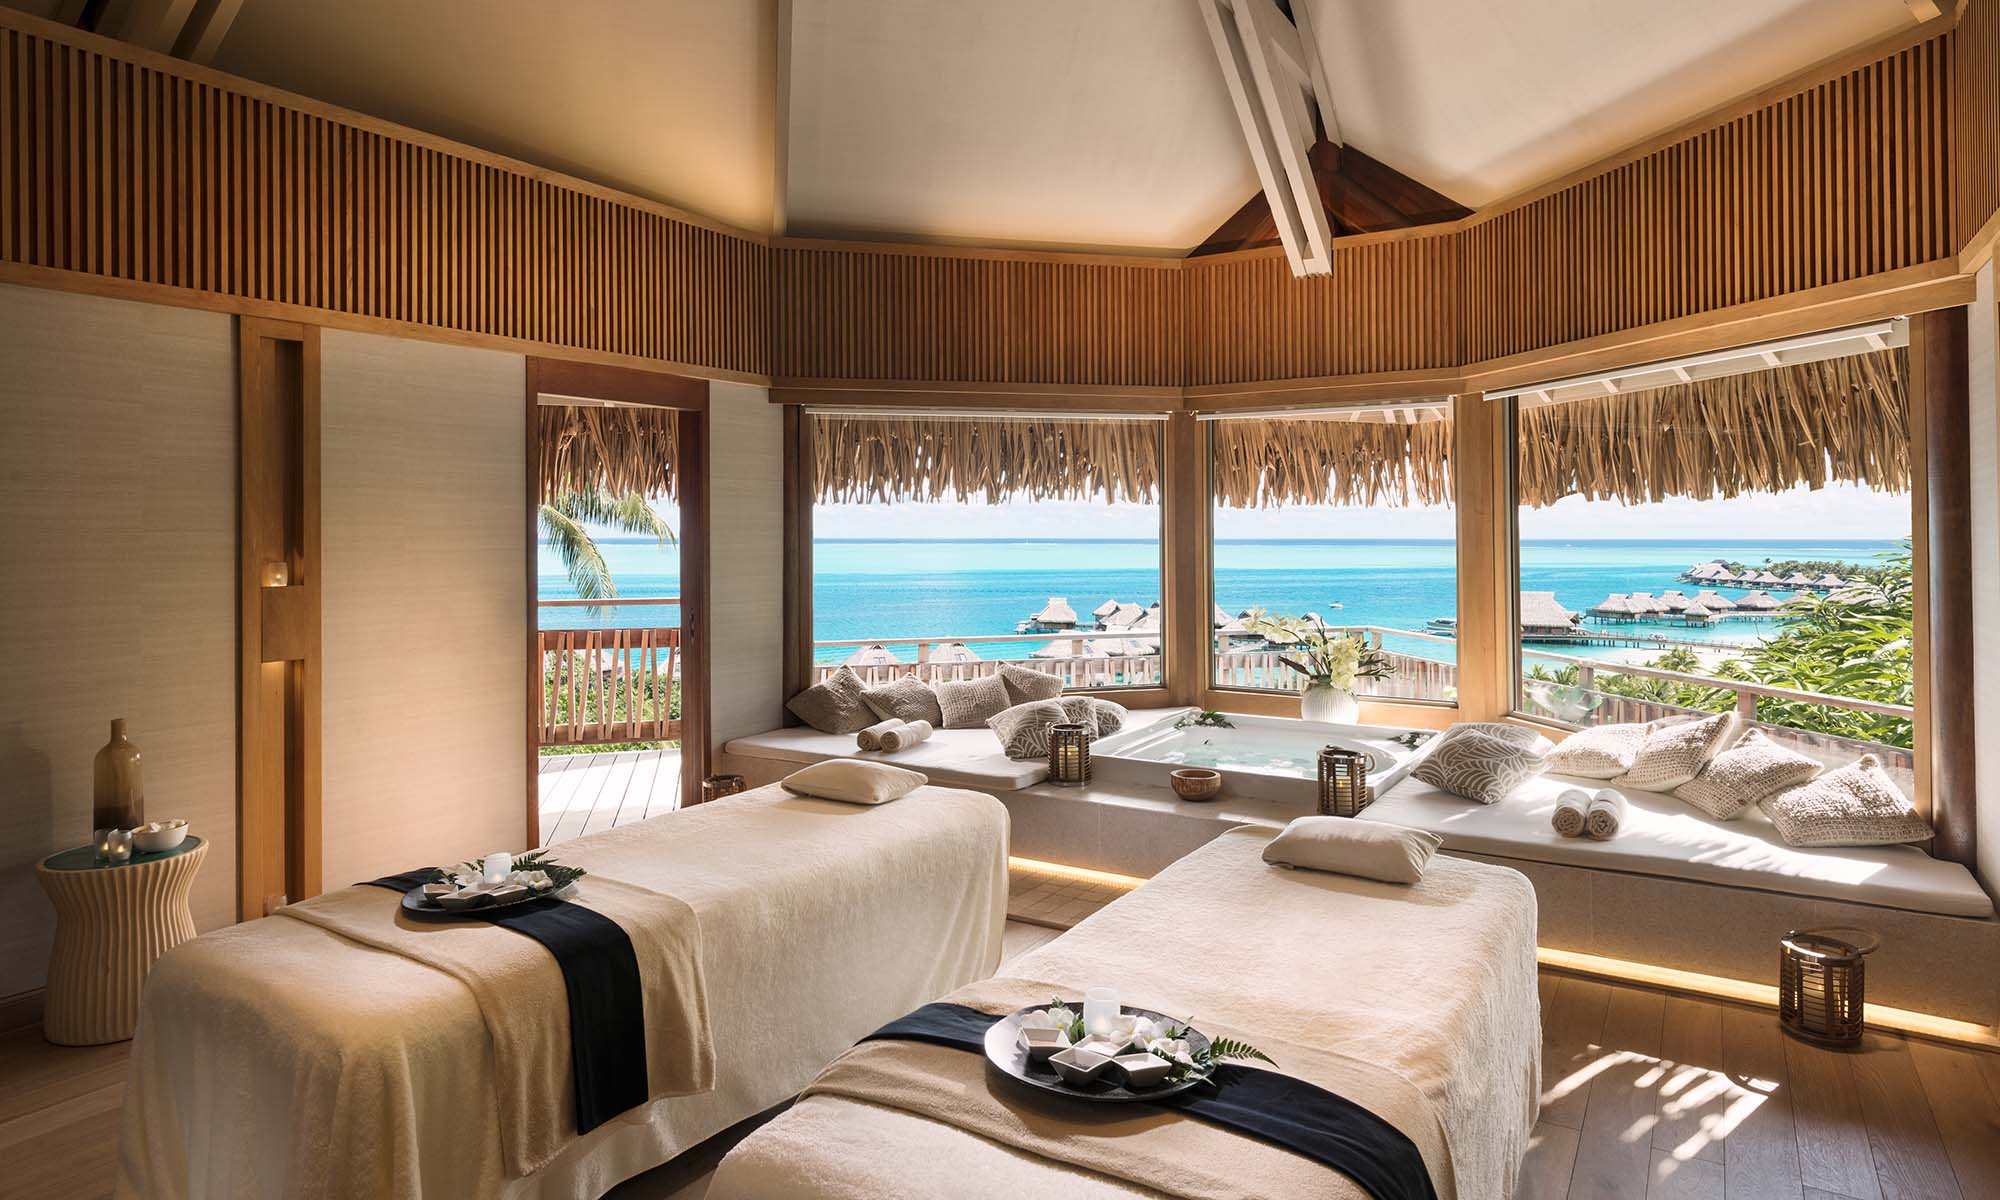 Conrad Bora Bora Nui, Couples Massage at Hina Spa